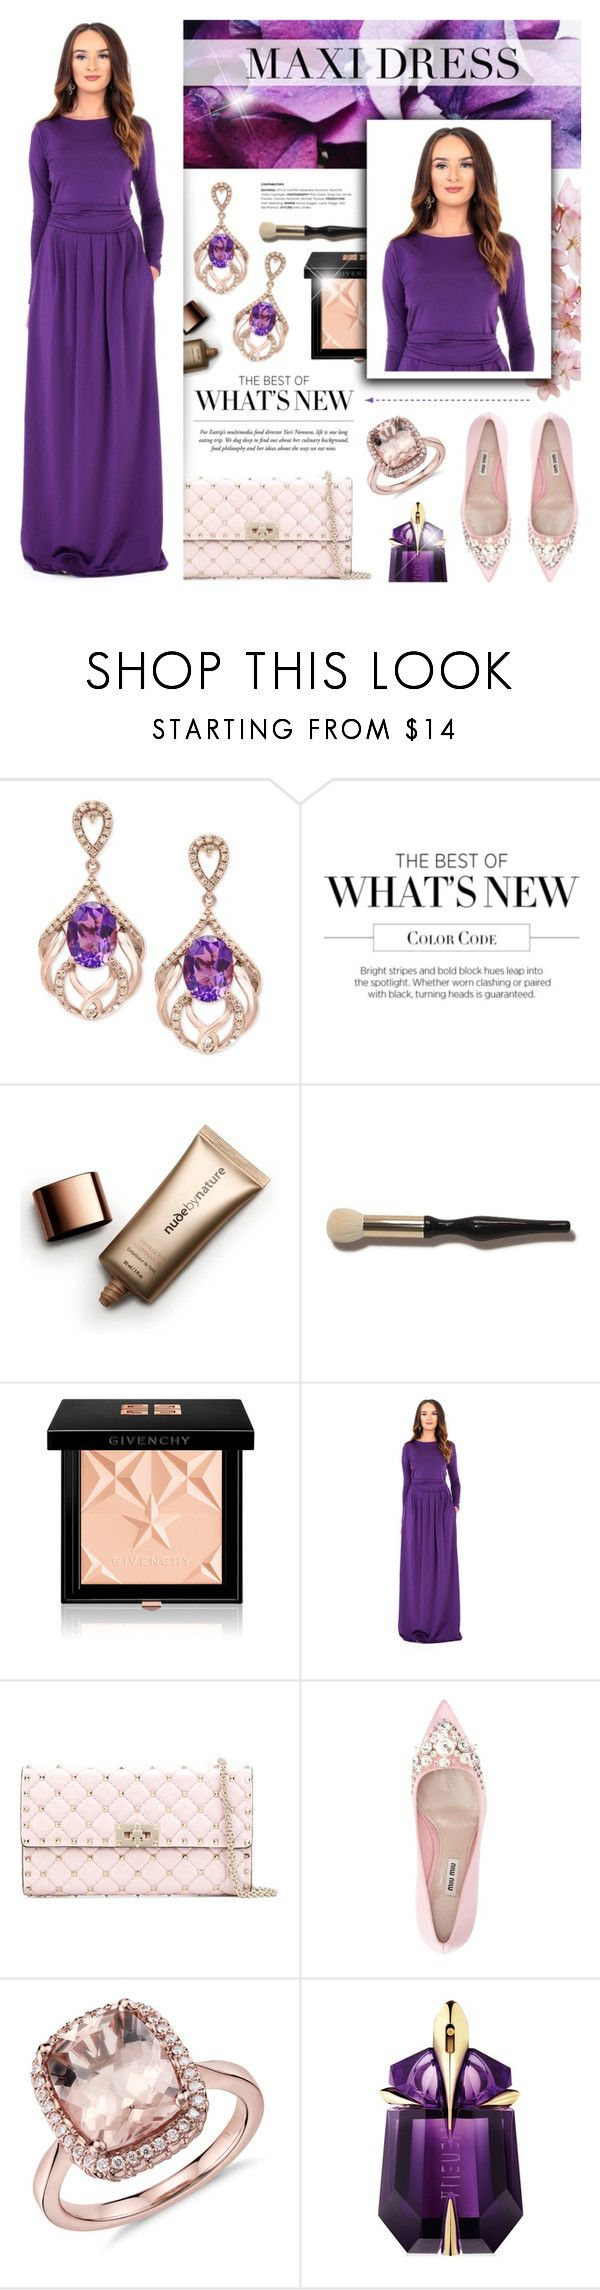 """""""DesirVale 29"""" by anyasdesigns ❤ liked on Polyvore featuring Effy Jewelry, Nude by Nature, Givenchy, Valentino, Miu Miu, Thierry Mugler and plus size dresses"""